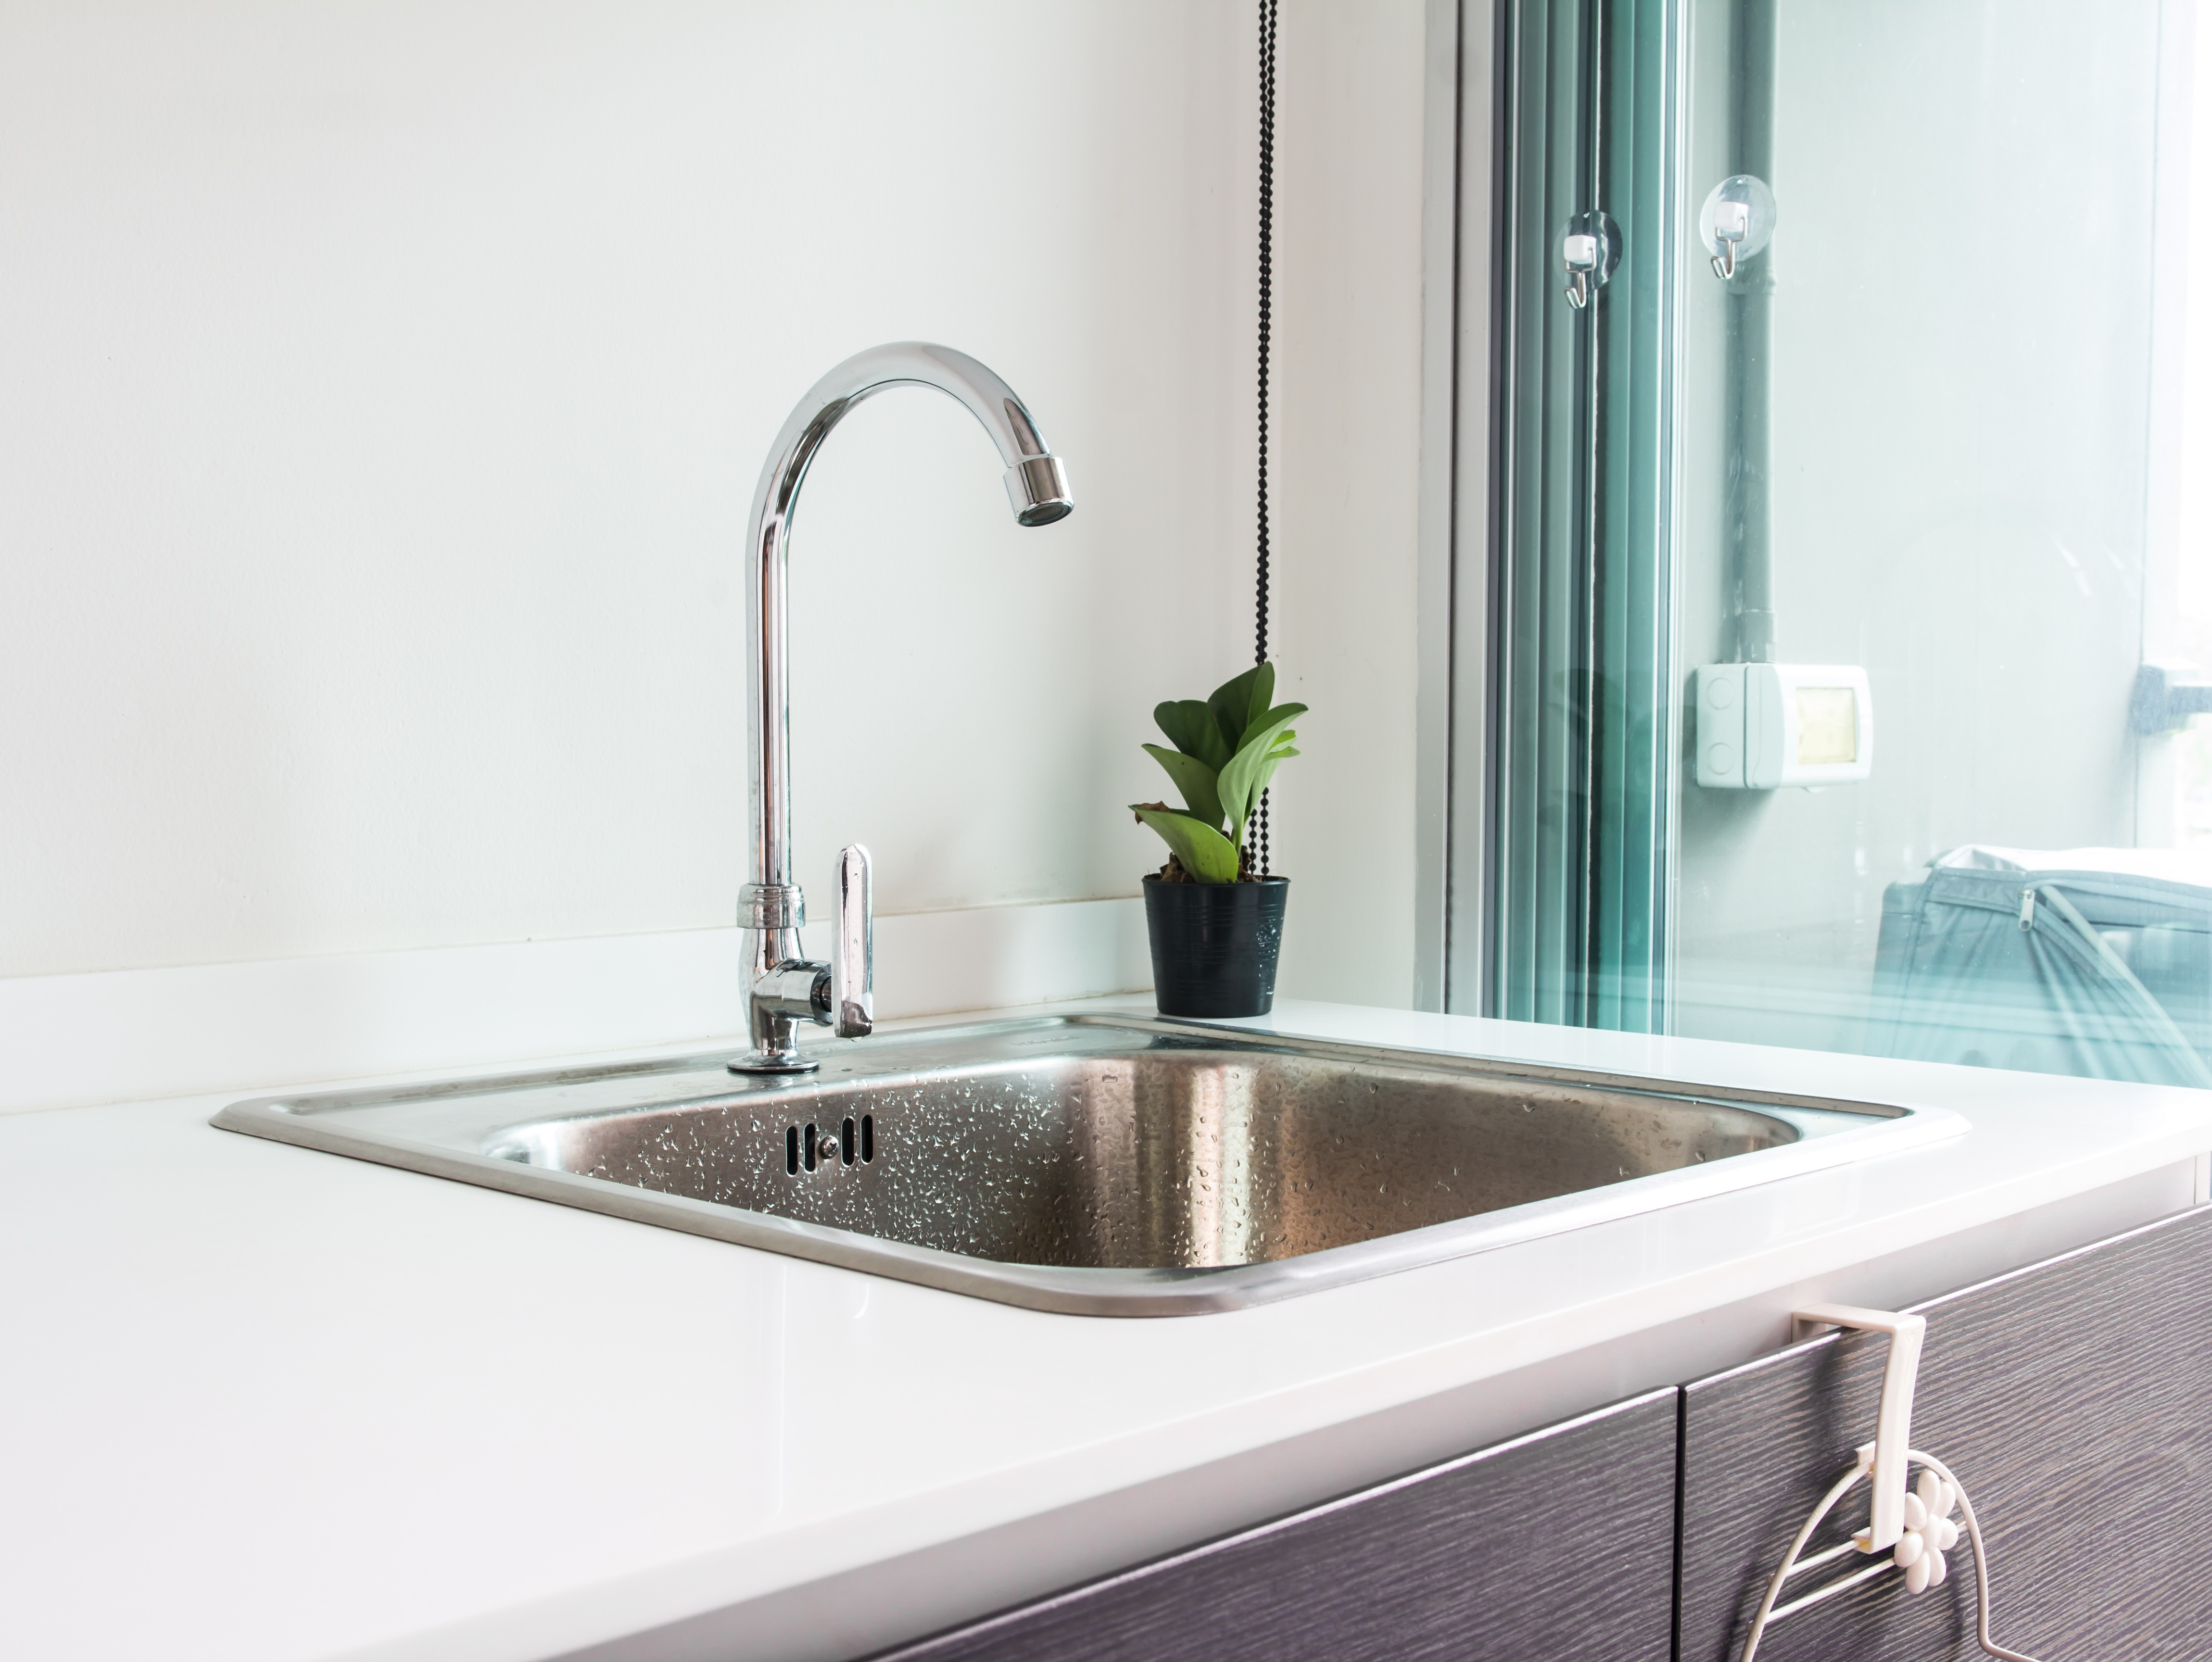 Superieur Under Mount Sinks By Comparison Are Installed From Beneath The Counter, And  Although There Is A Rim Around The Sink It Attaches Underneath The Counter  And ...